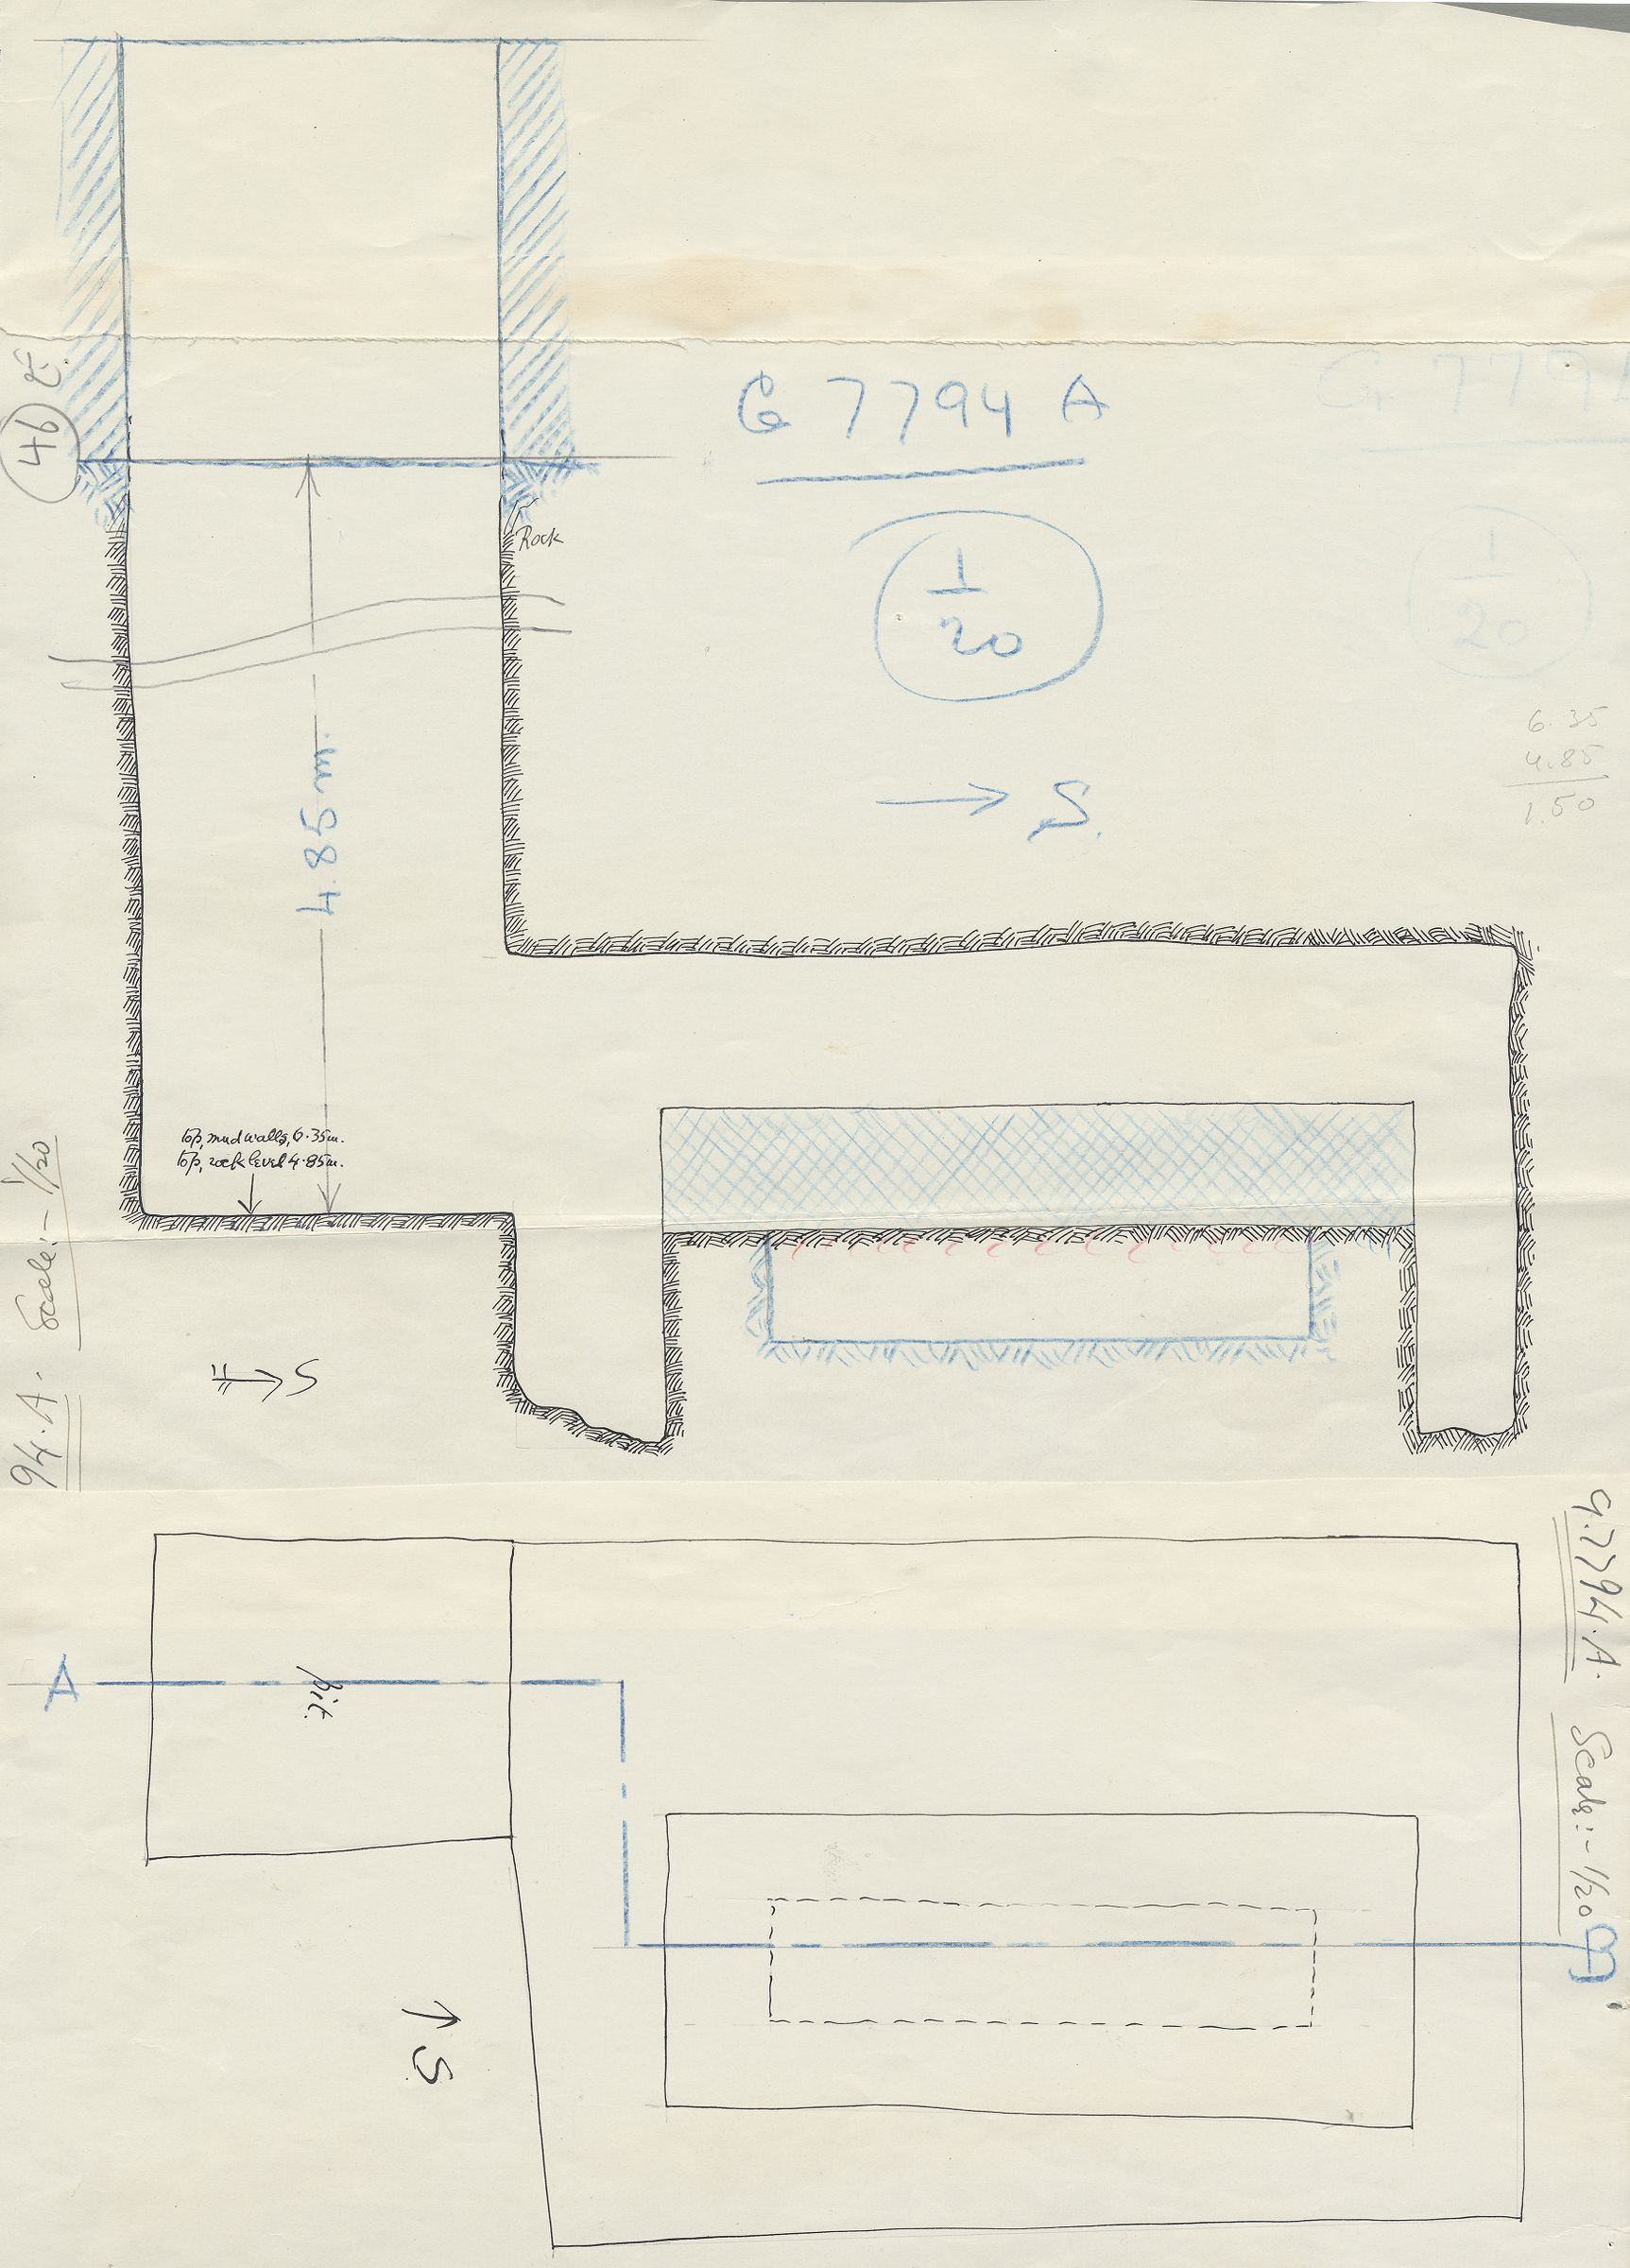 Maps and plans: G 7794, Shaft A